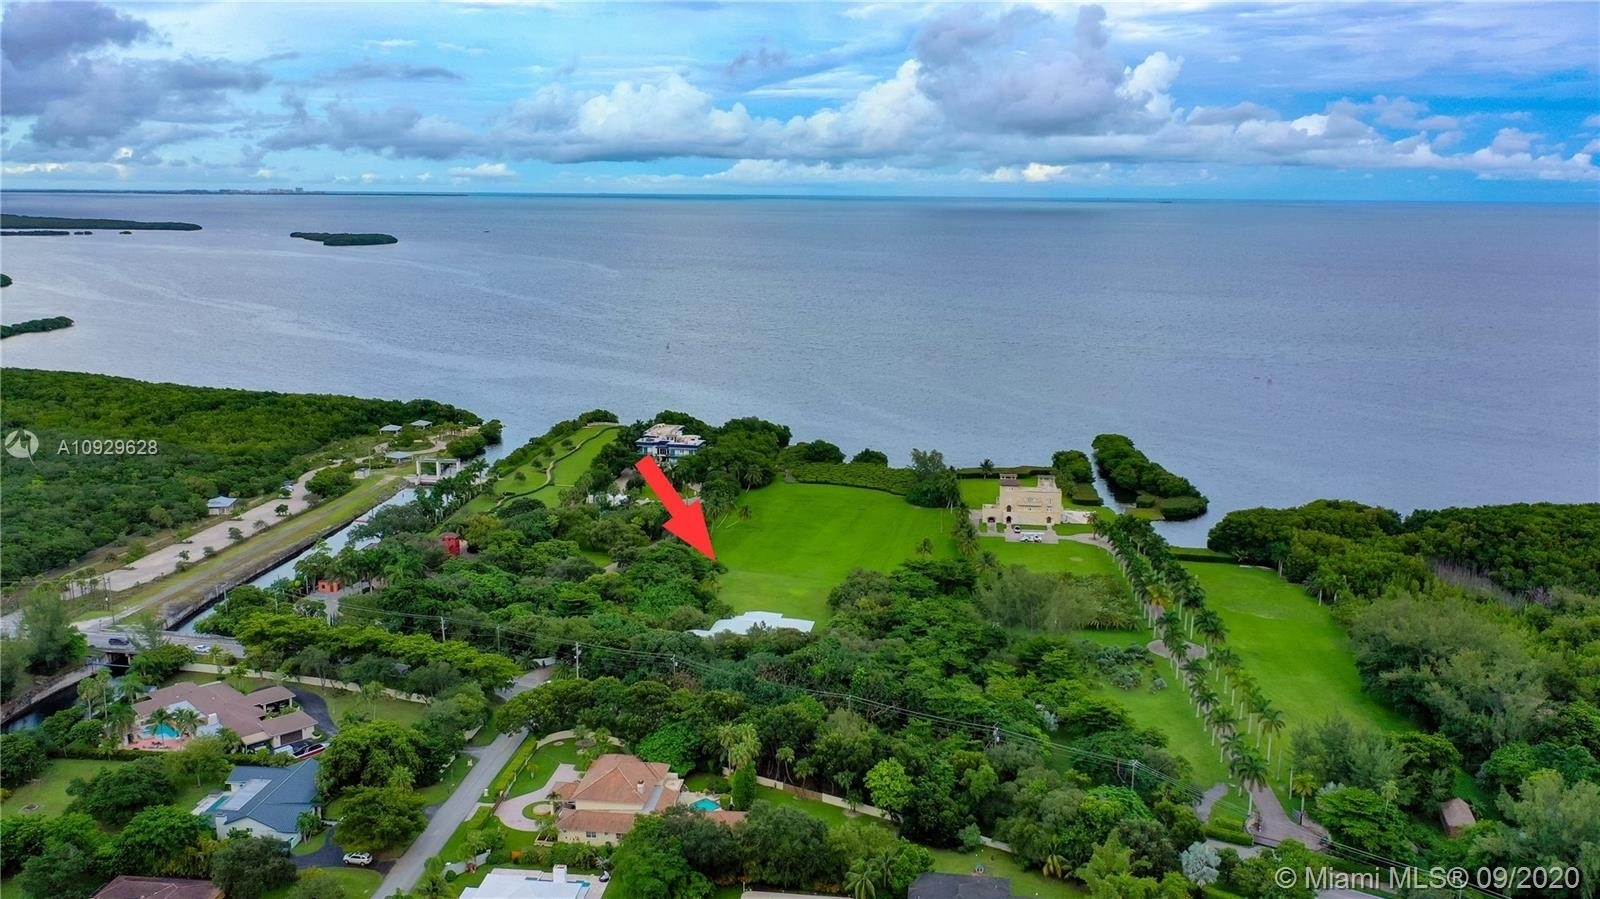 Single Family Home for Sale at Palmetto Bay, FL 33157